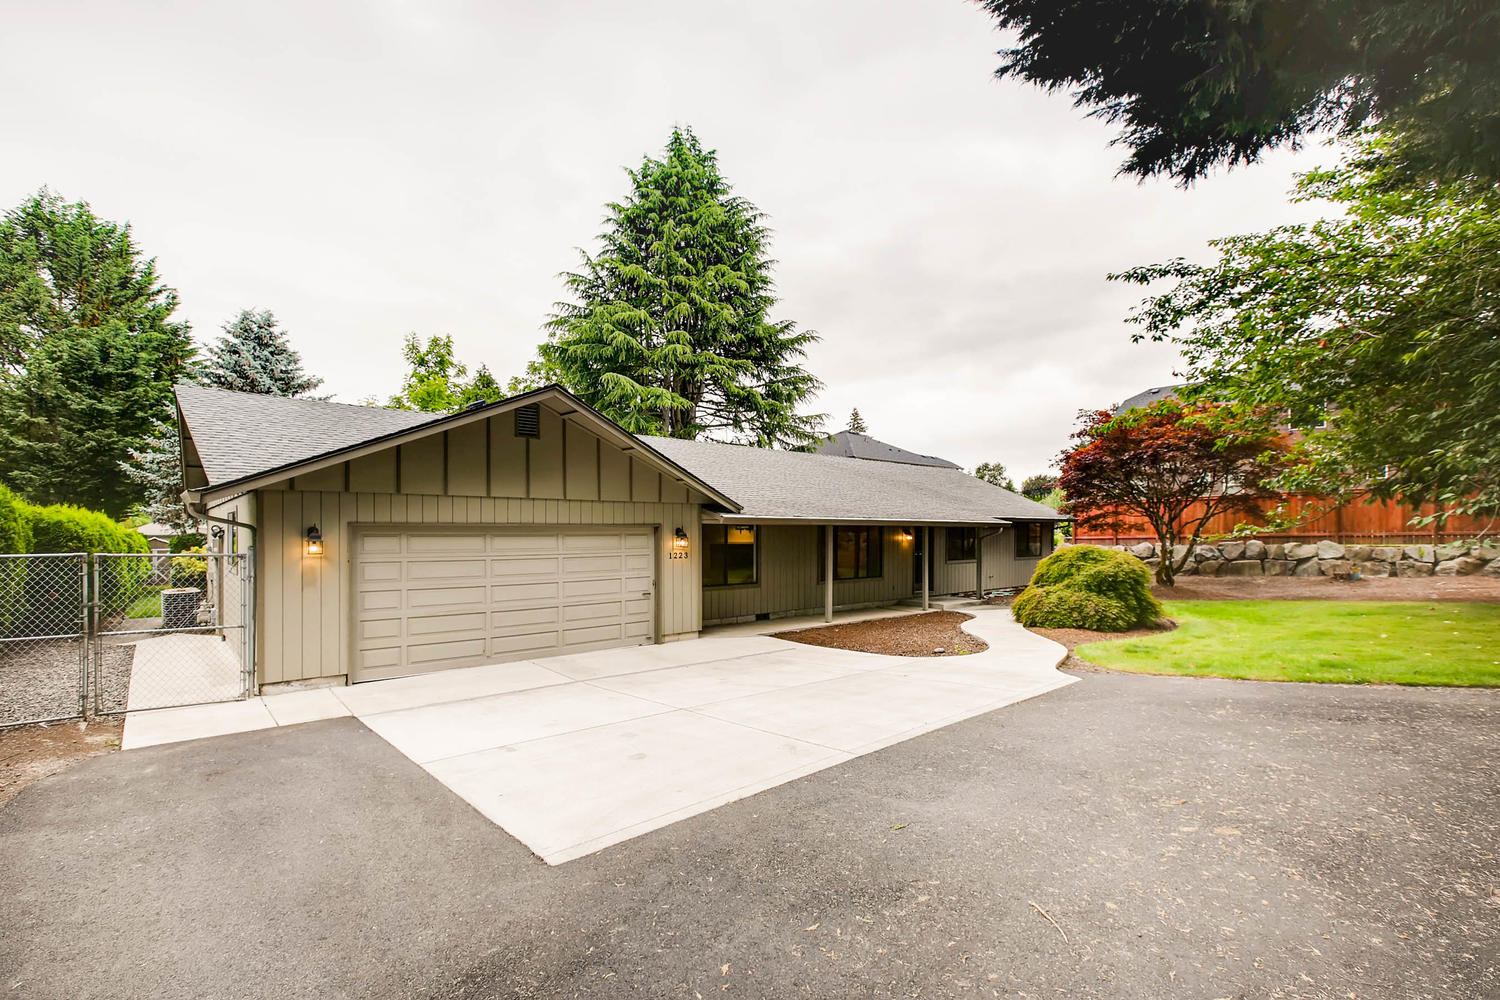 Photo of 1223 NW 109th St, Vancouver, WA, 98685